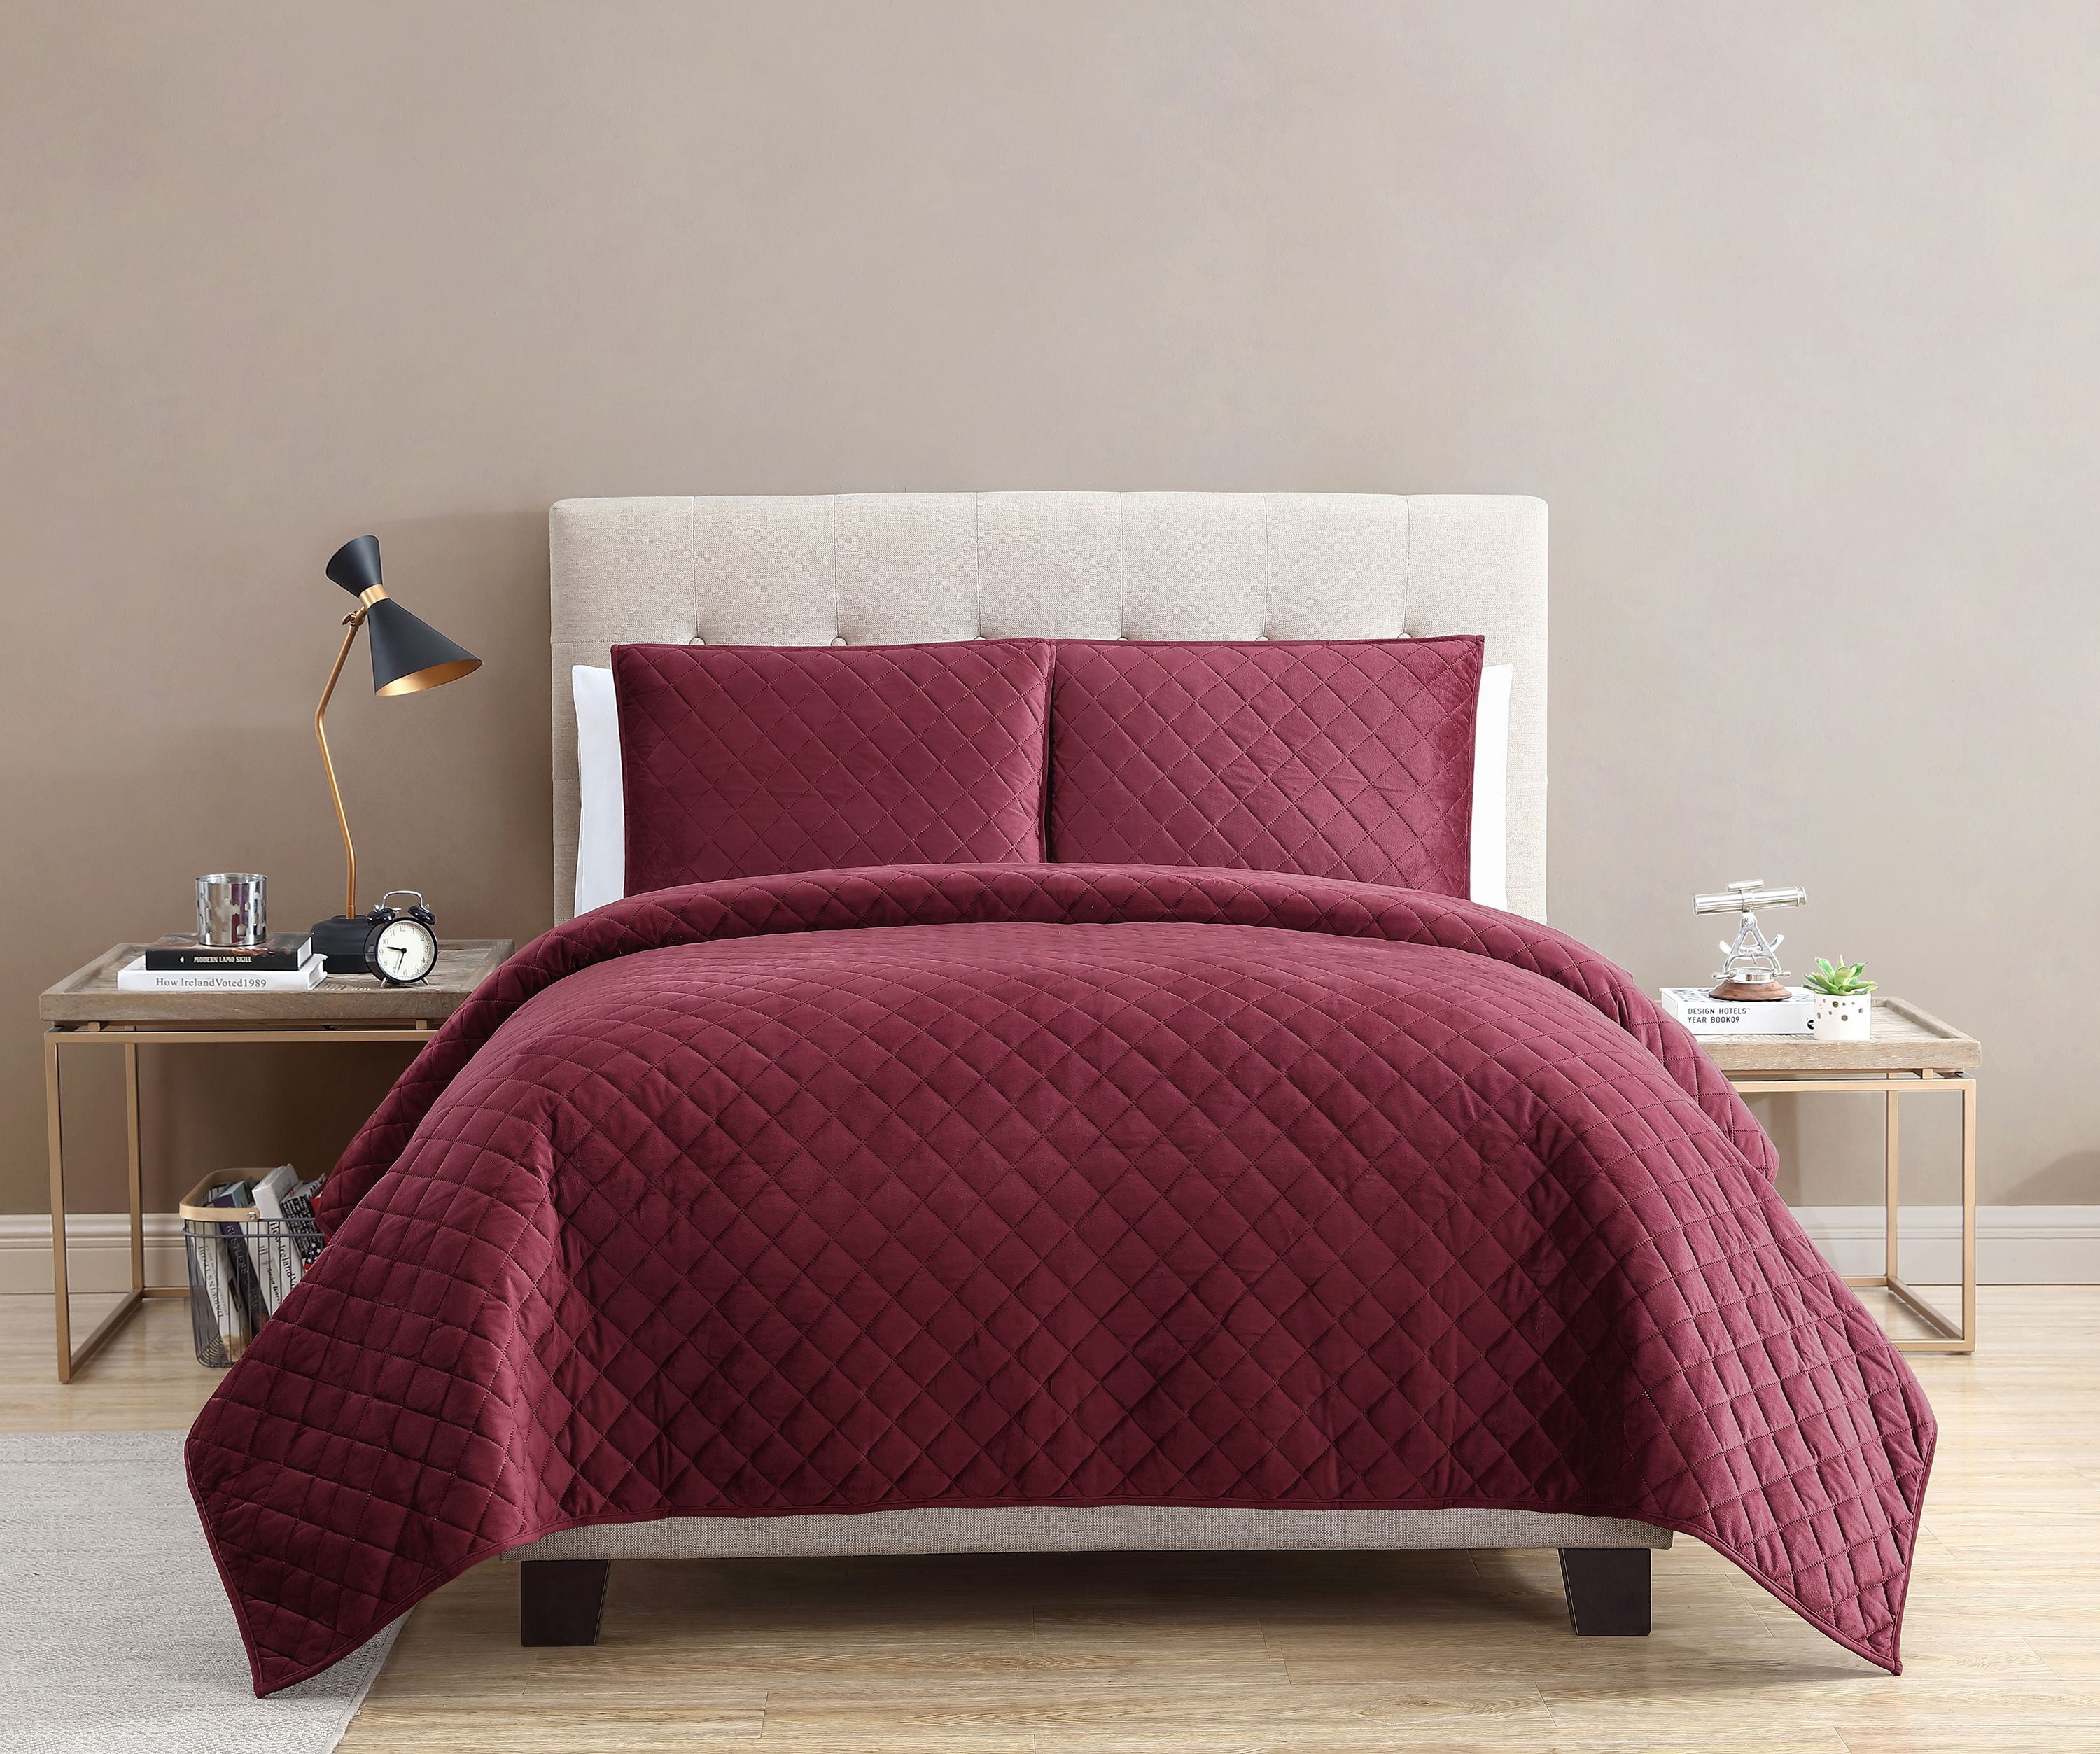 Mainstays Soft Plush Mink Velvet Red Quilt Collection